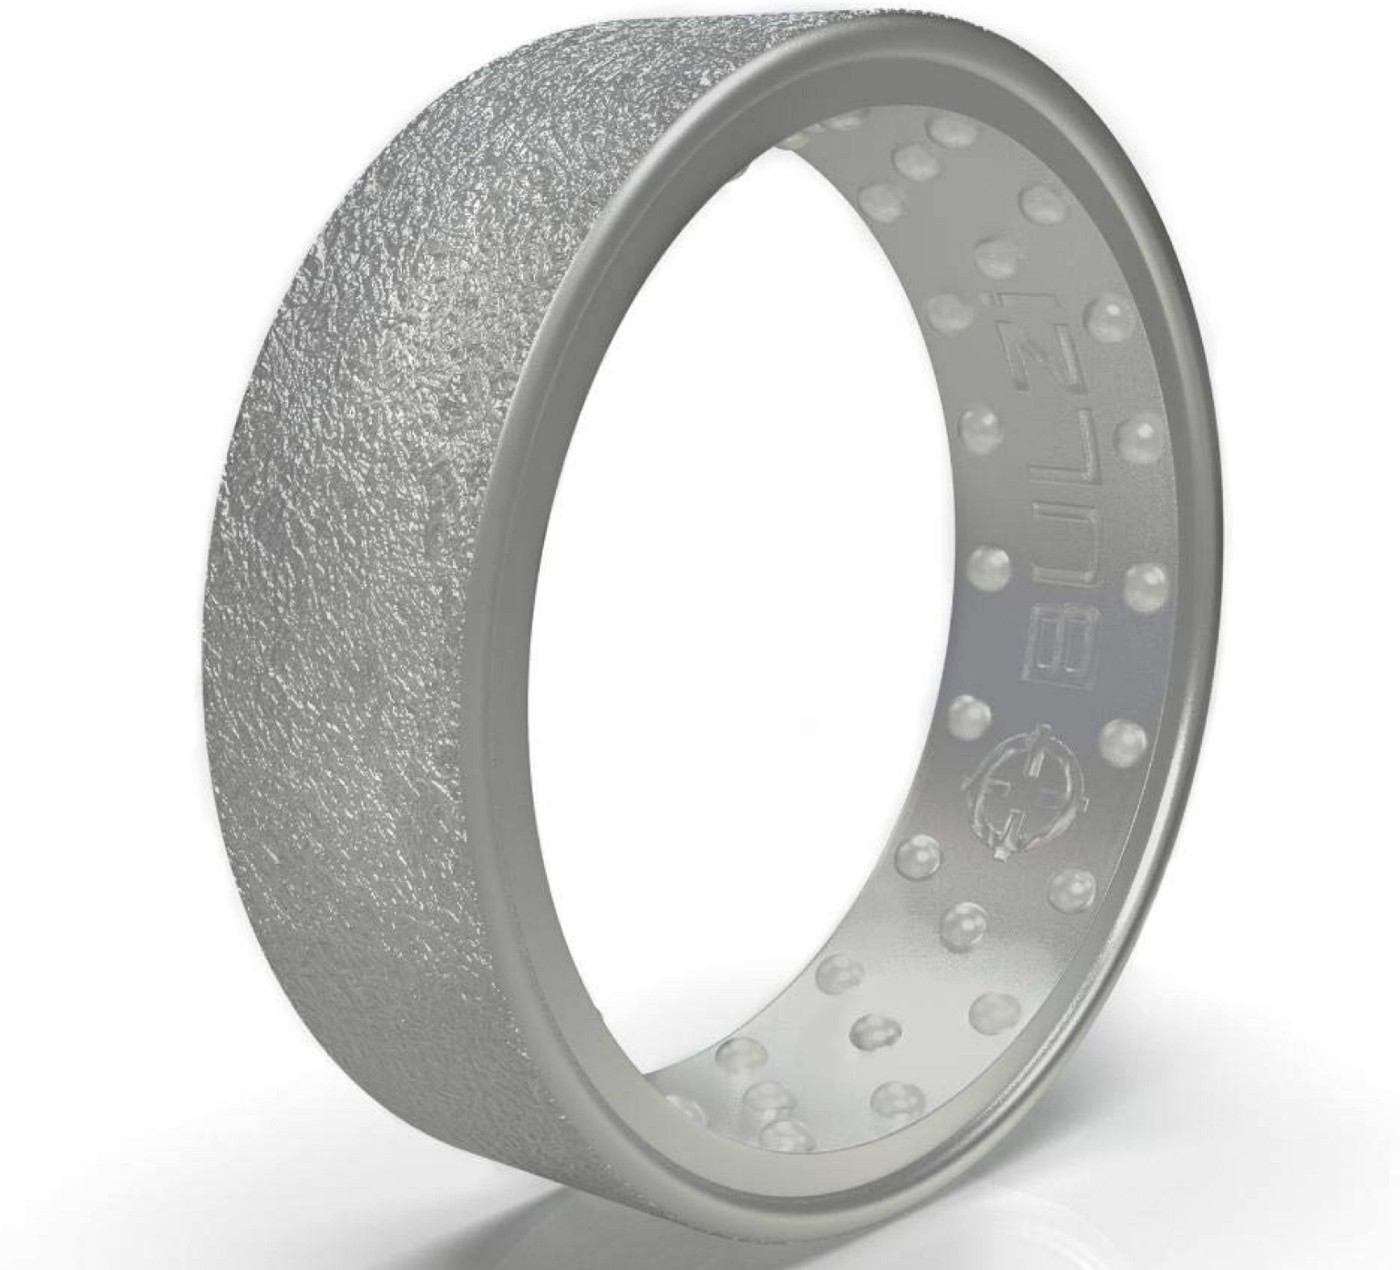 Silicone Wedding Ring, Massaging Comfort Fit Hammered Finish Silicone Ring with Airflow